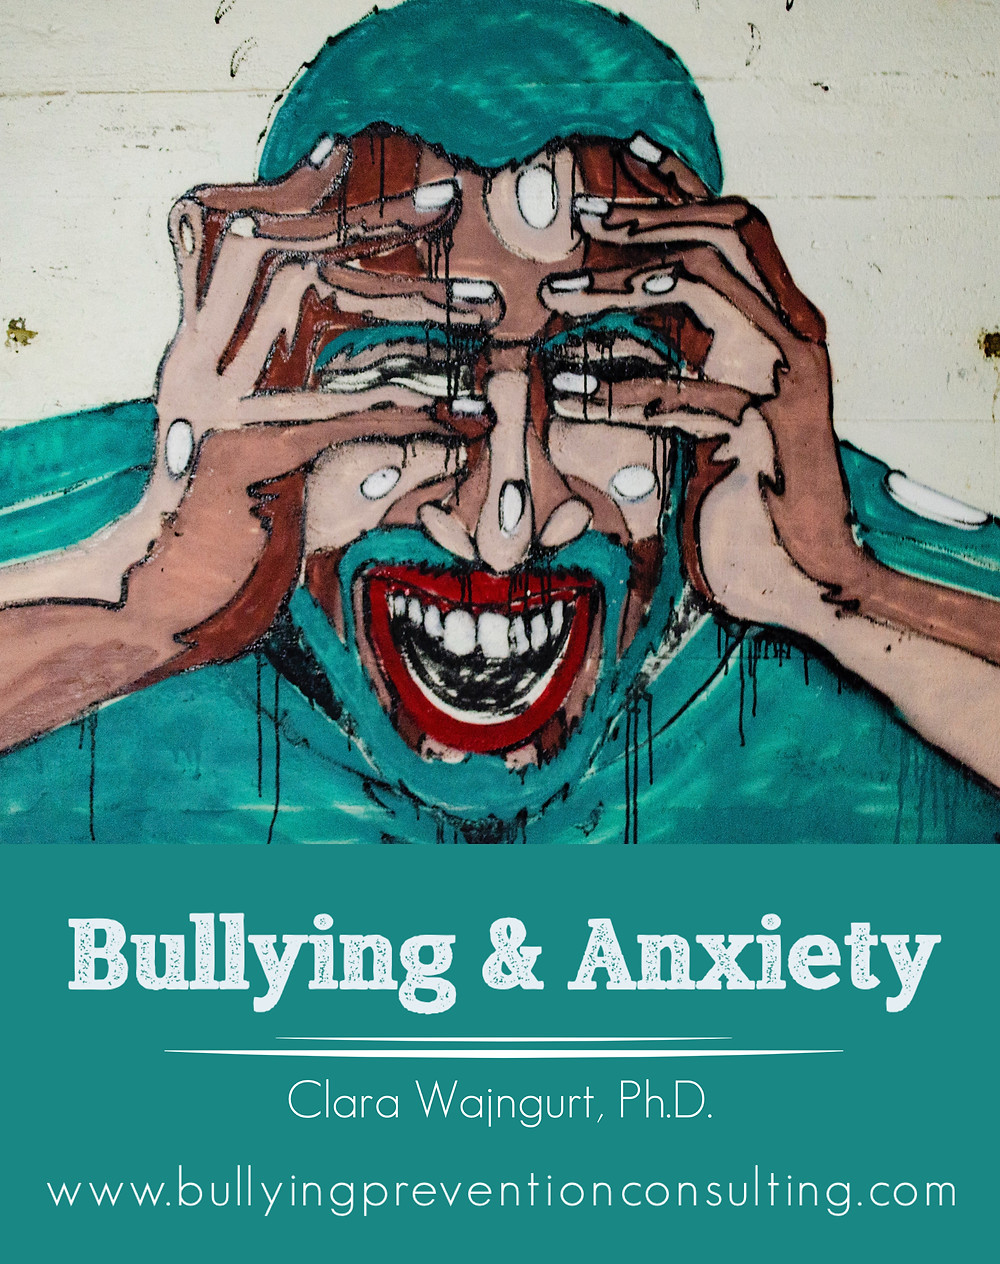 bullying, anxiety, depression. ptsd, lack of trust, toxic workplace,  overcoming bullying, afraid of speak up, workplace, toxic manager, bystander, upstander, accountability, undergraduate experience,management, virtual, effective communication, stop bullying, ideas to stop bullying, diversity, inclusion, workplace culture, incivility at work, workplace culture